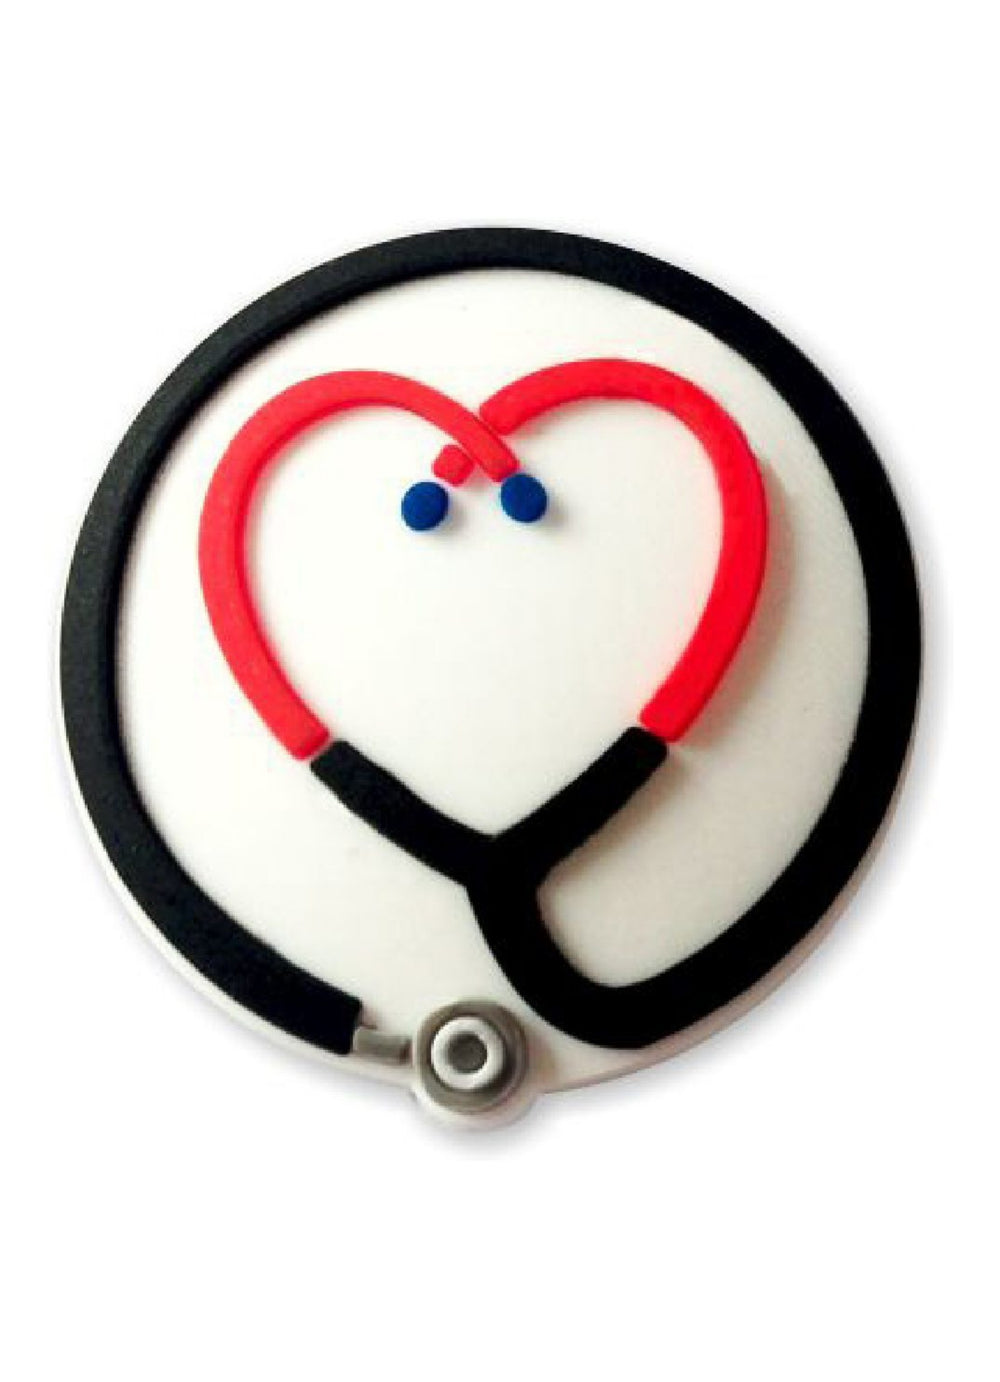 3D Rubber Retractable Badge Reel – Stethoscope